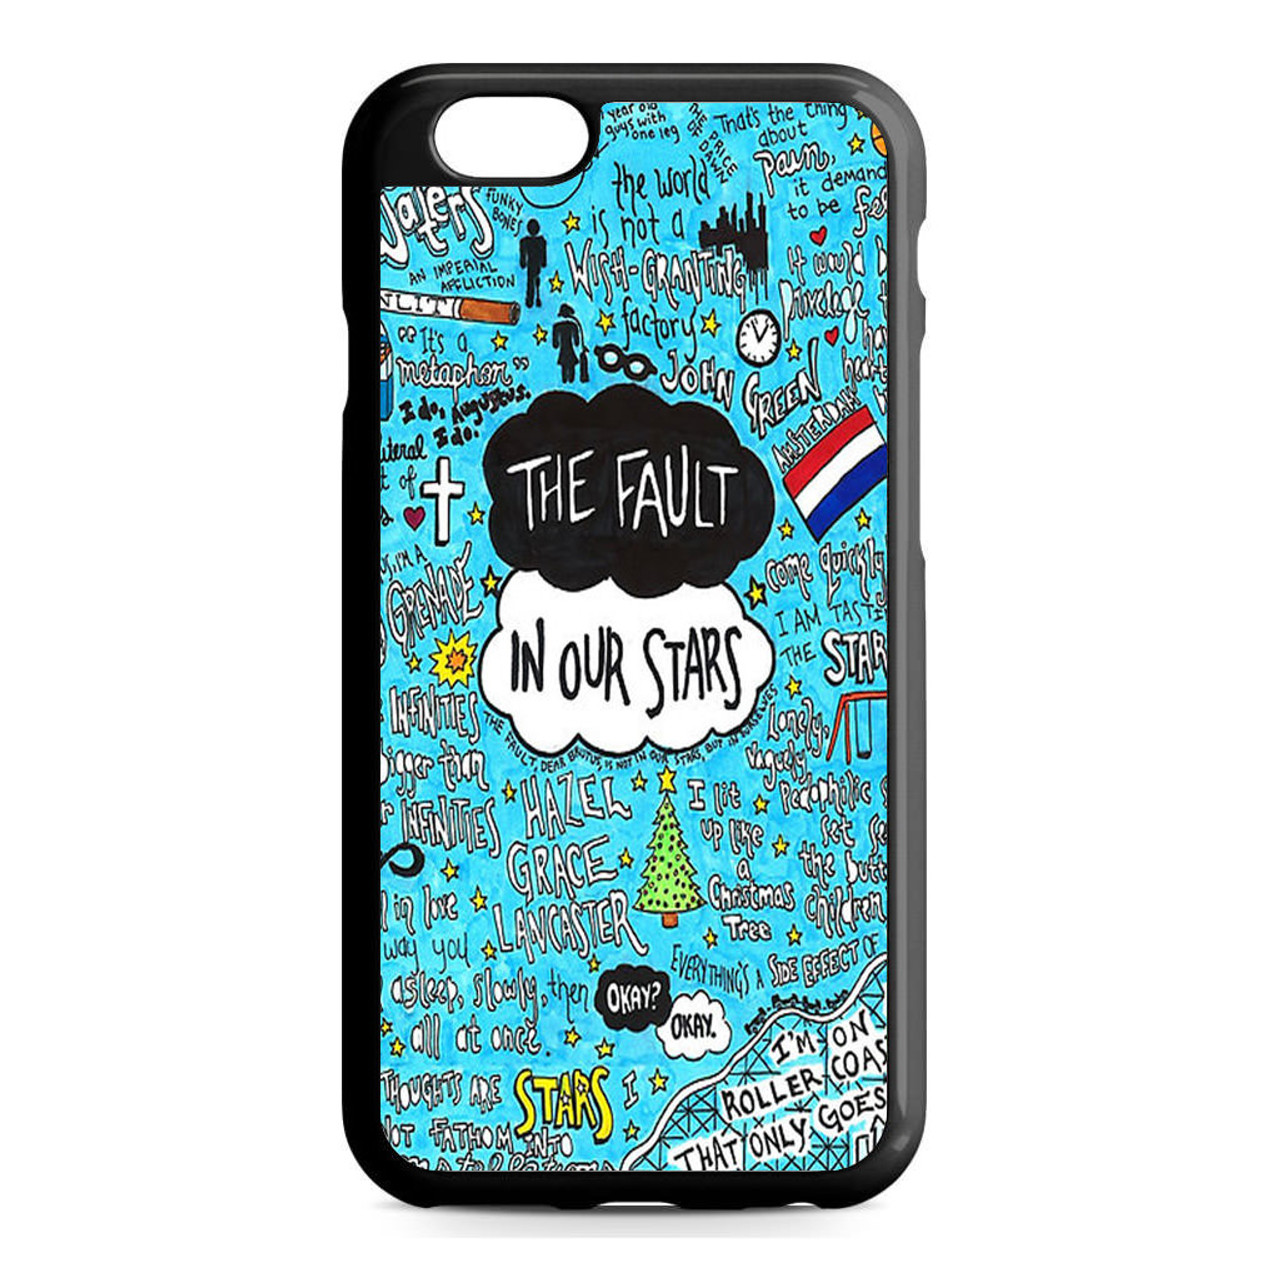 100% authentic b99c6 9fa0f The Fault in Our Stars Quotes Flag iPhone 6/6S Case